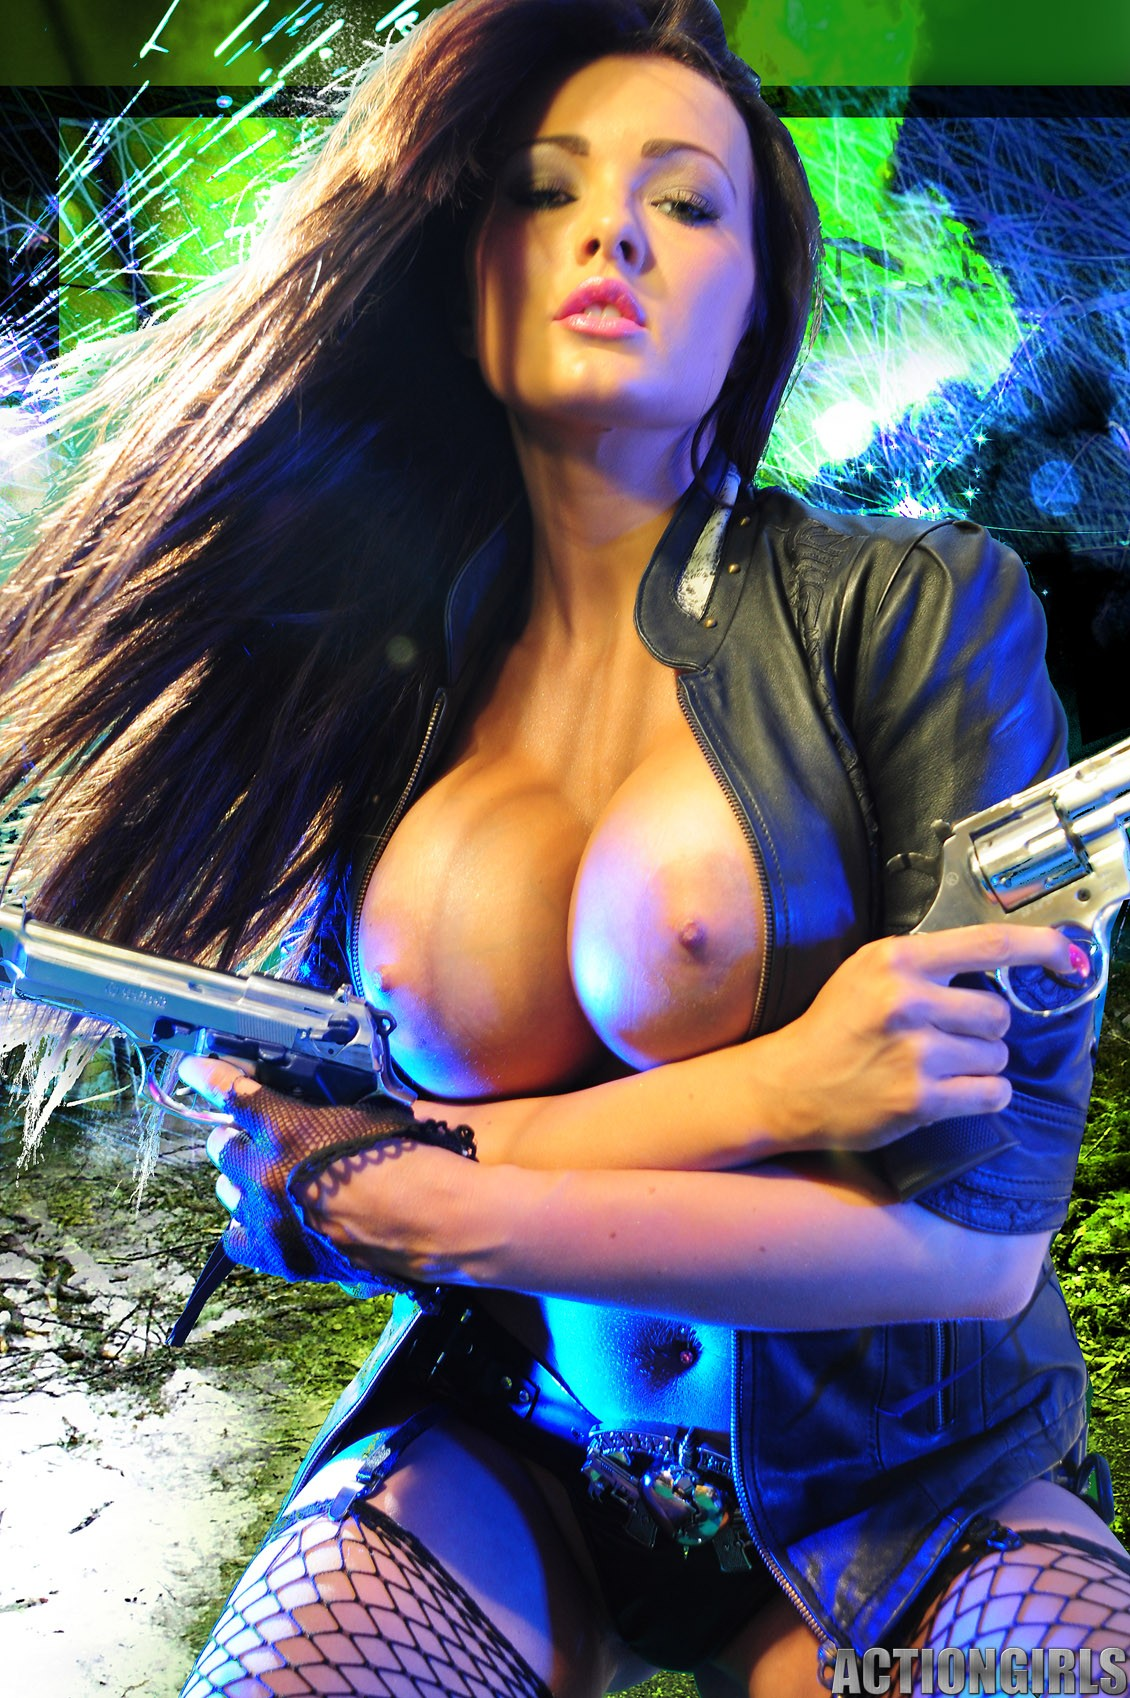 Action Girl (3)